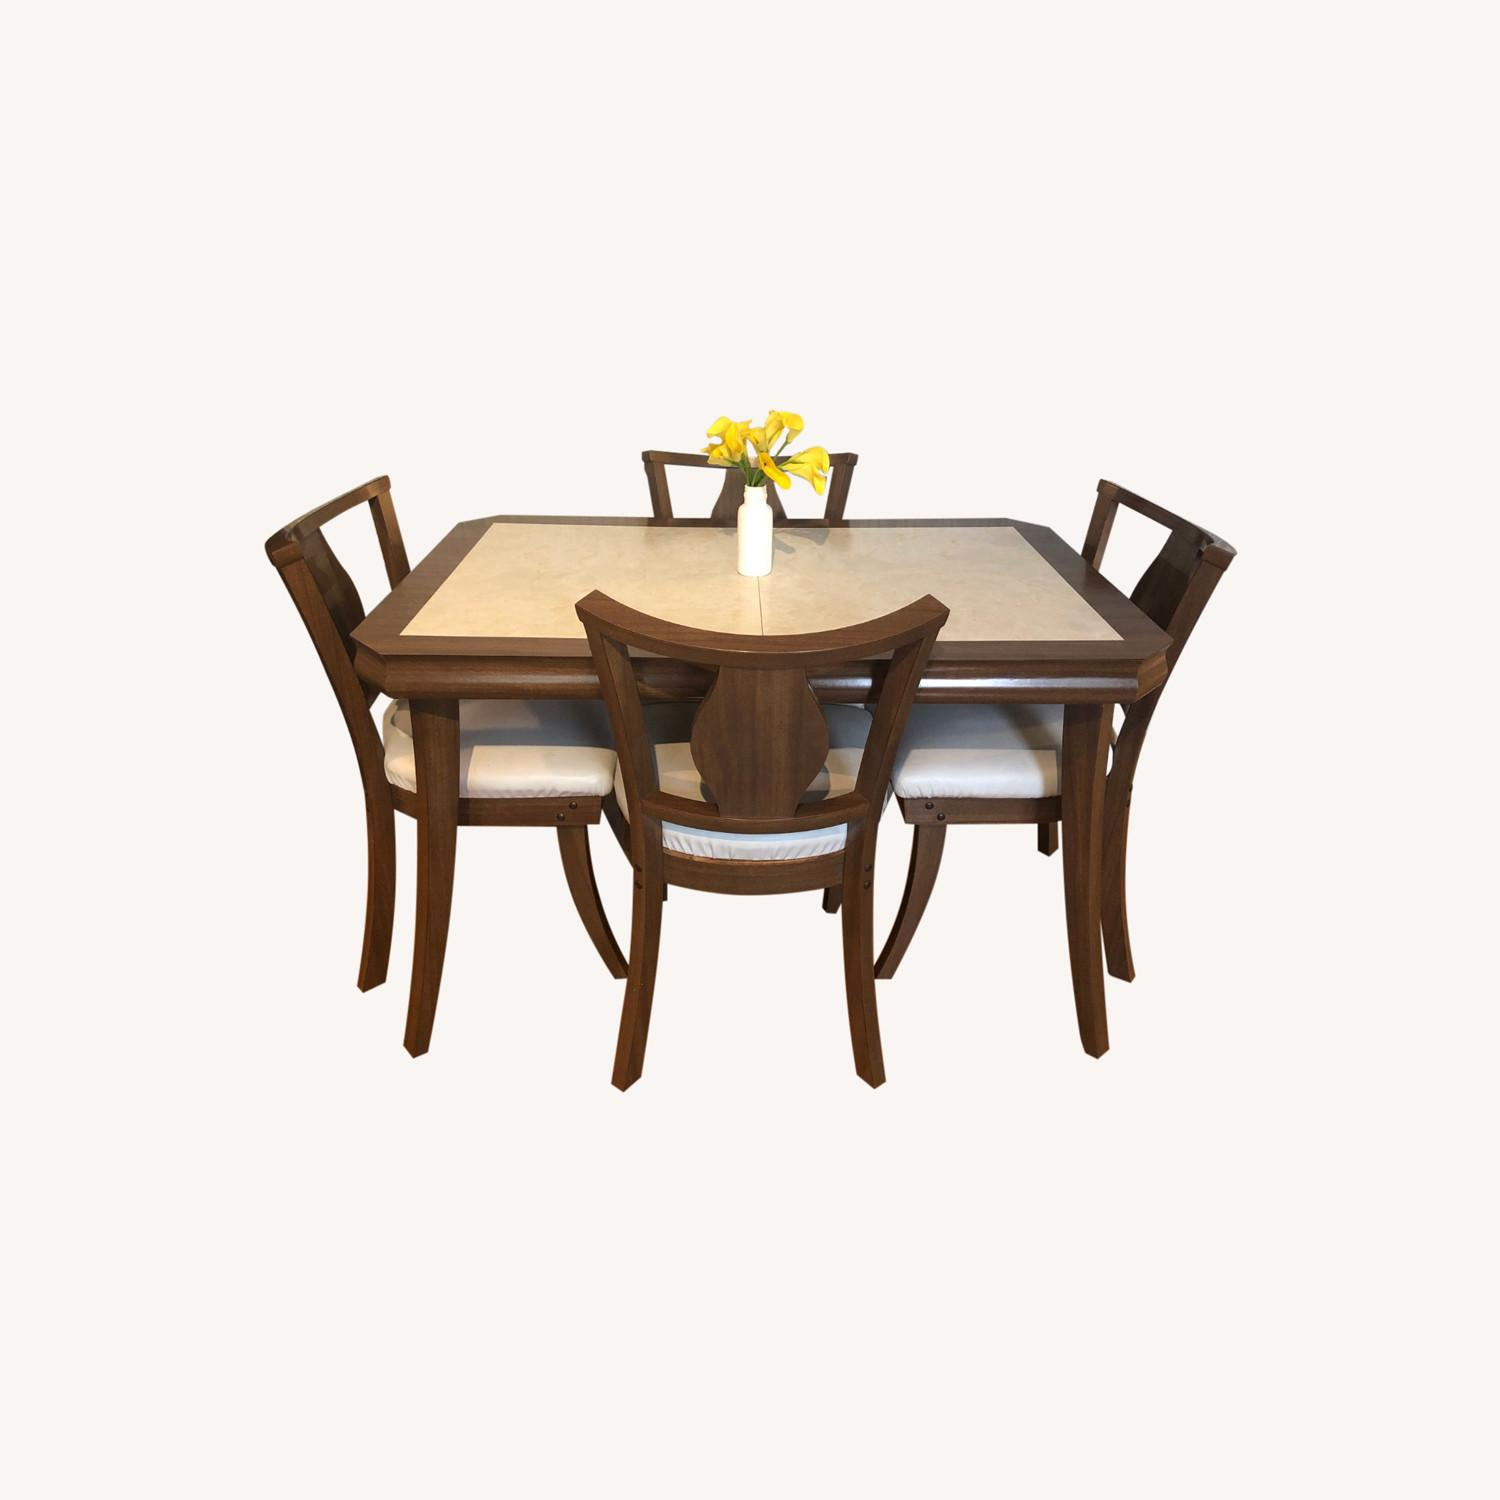 Mid Century Modern Dining Table - image-0